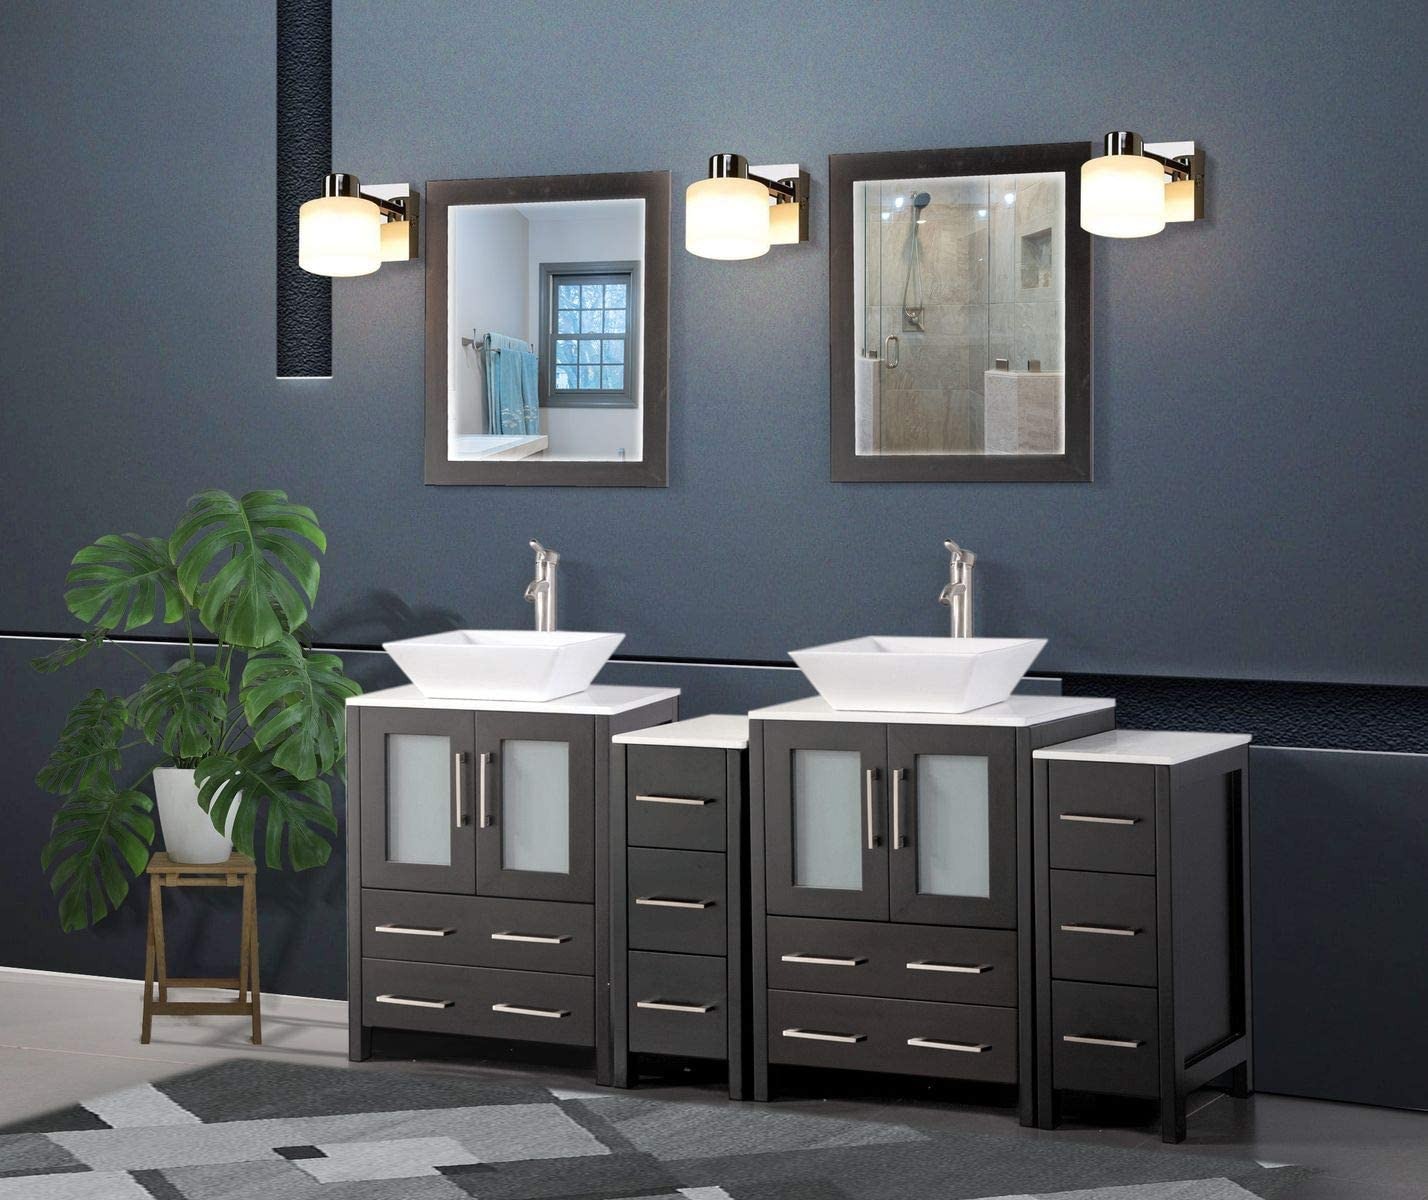 Amazon Com Vanity Art 72 Inch Double Sink Bathroom Vanity Compact Set 4 Cabinets 2 Shelves 10 Dove Tailed Drawers Quartz Top And Ceramic Vessel Sink Bathroom Cabinet With Free Mirror Va3124 72 E Tools